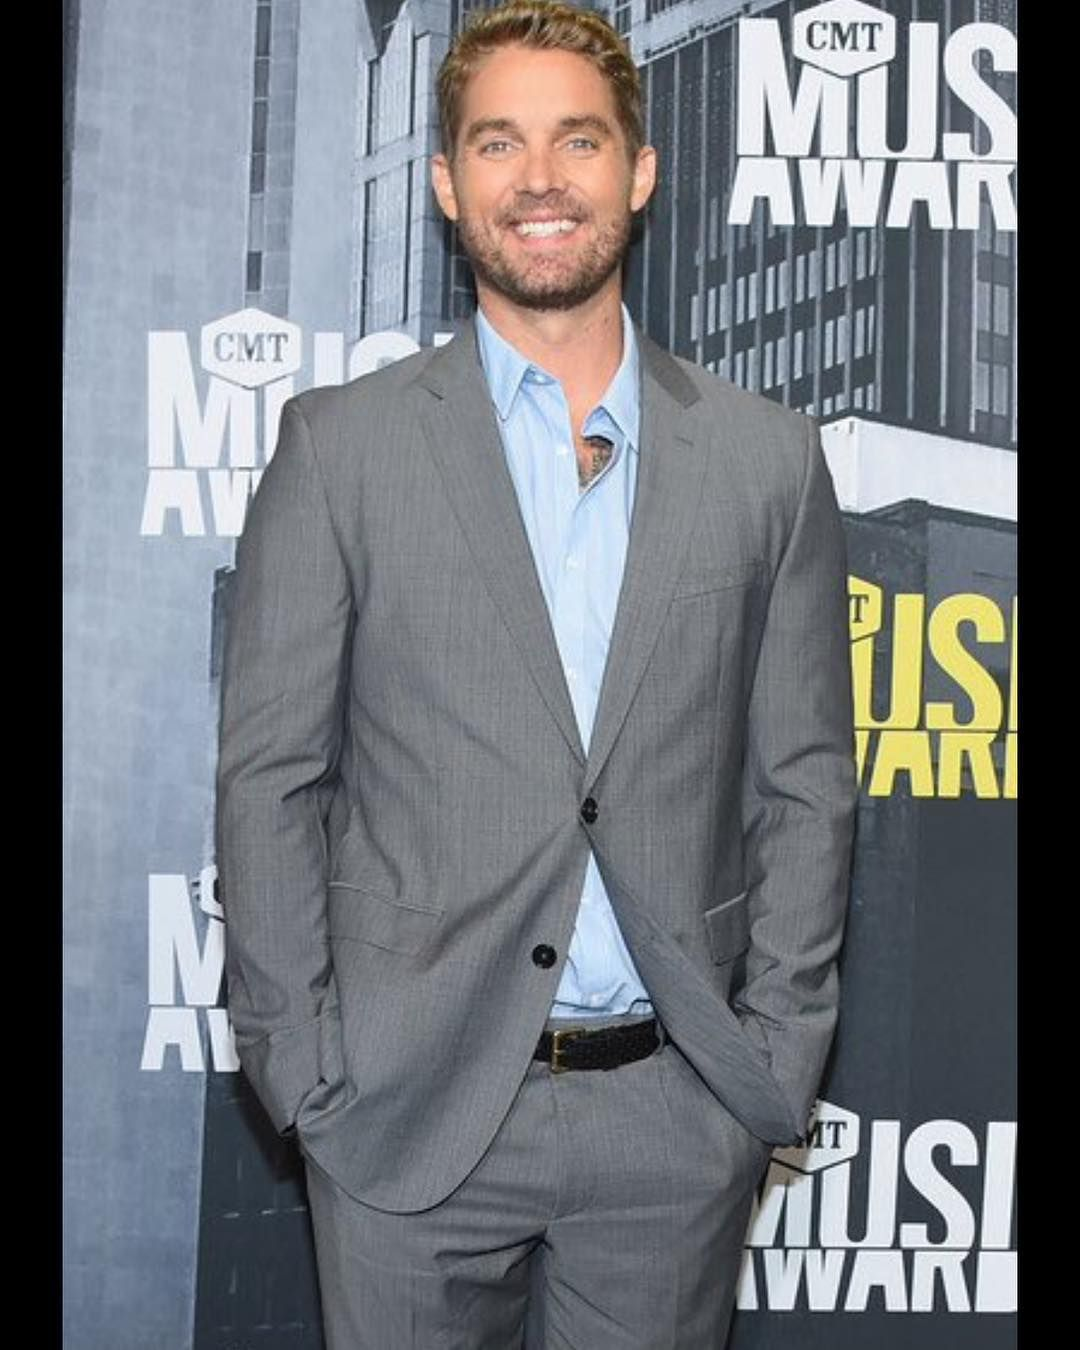 121 likes 5 comments here to support brett young